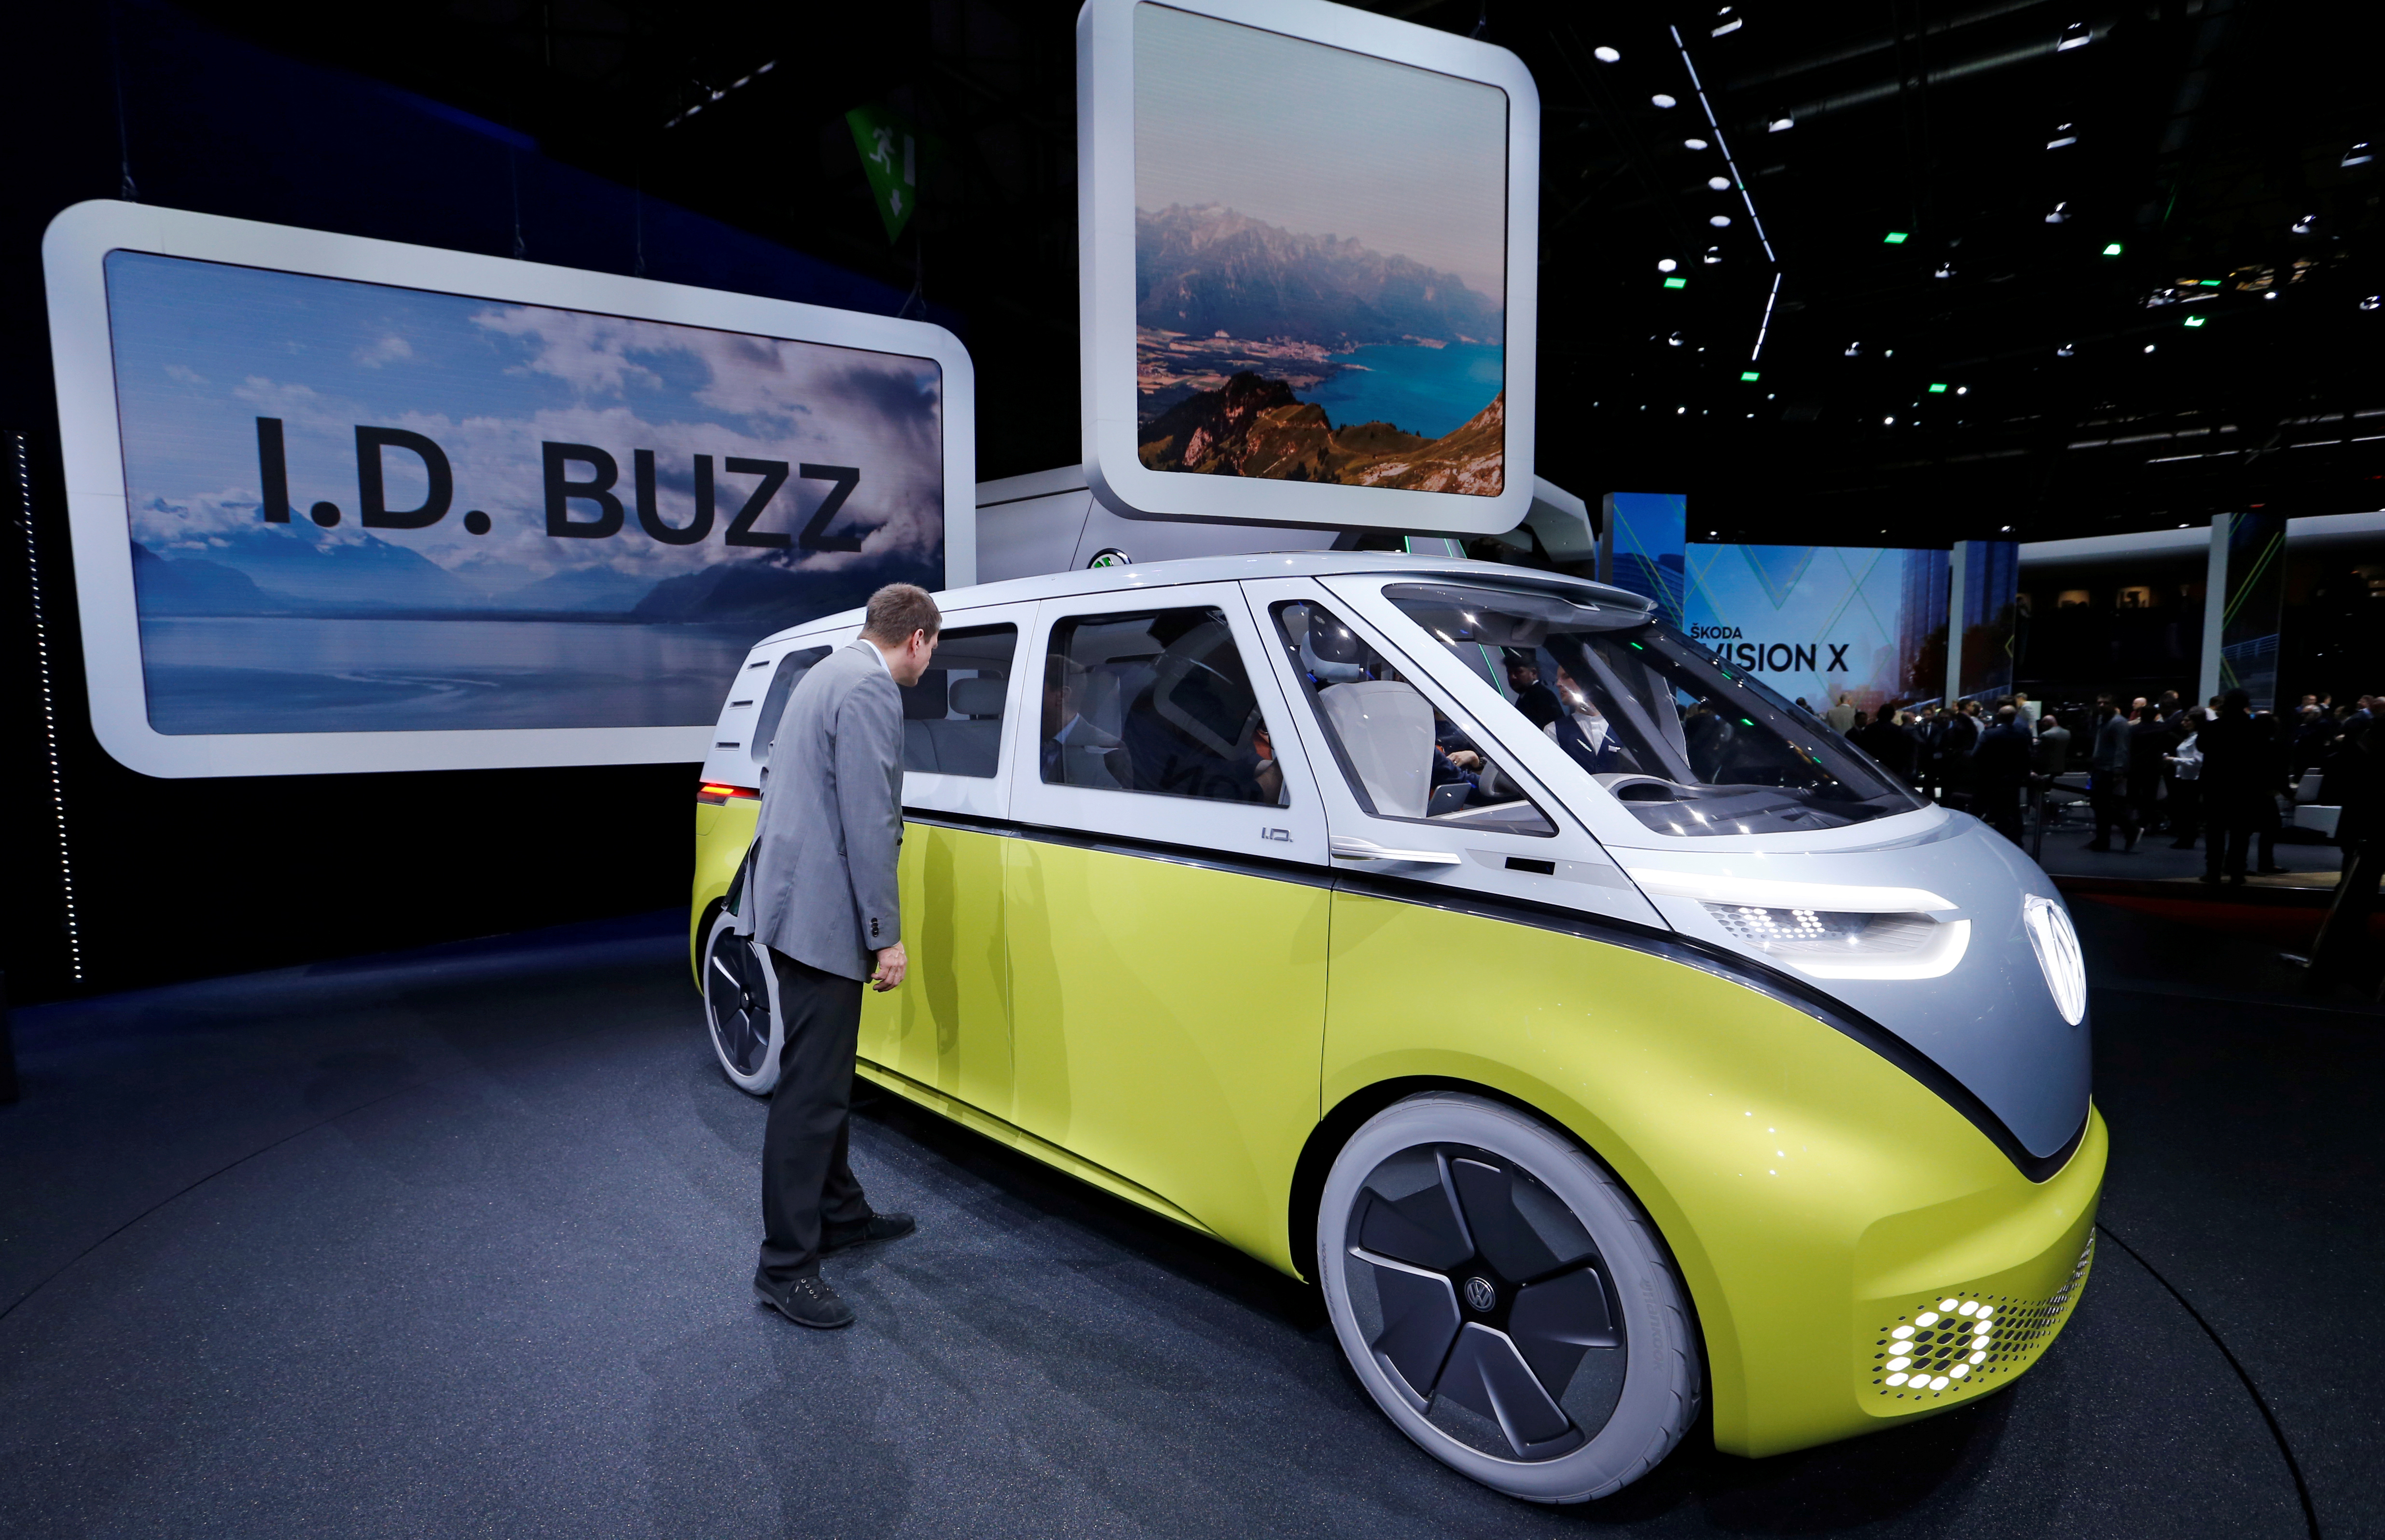 The Volkswagen I.D. Buzz is seen during the 88th International Motor Show at Palexpo in Geneva, Switzerland, March 6, 2018.  REUTERS/Denis Balibouse